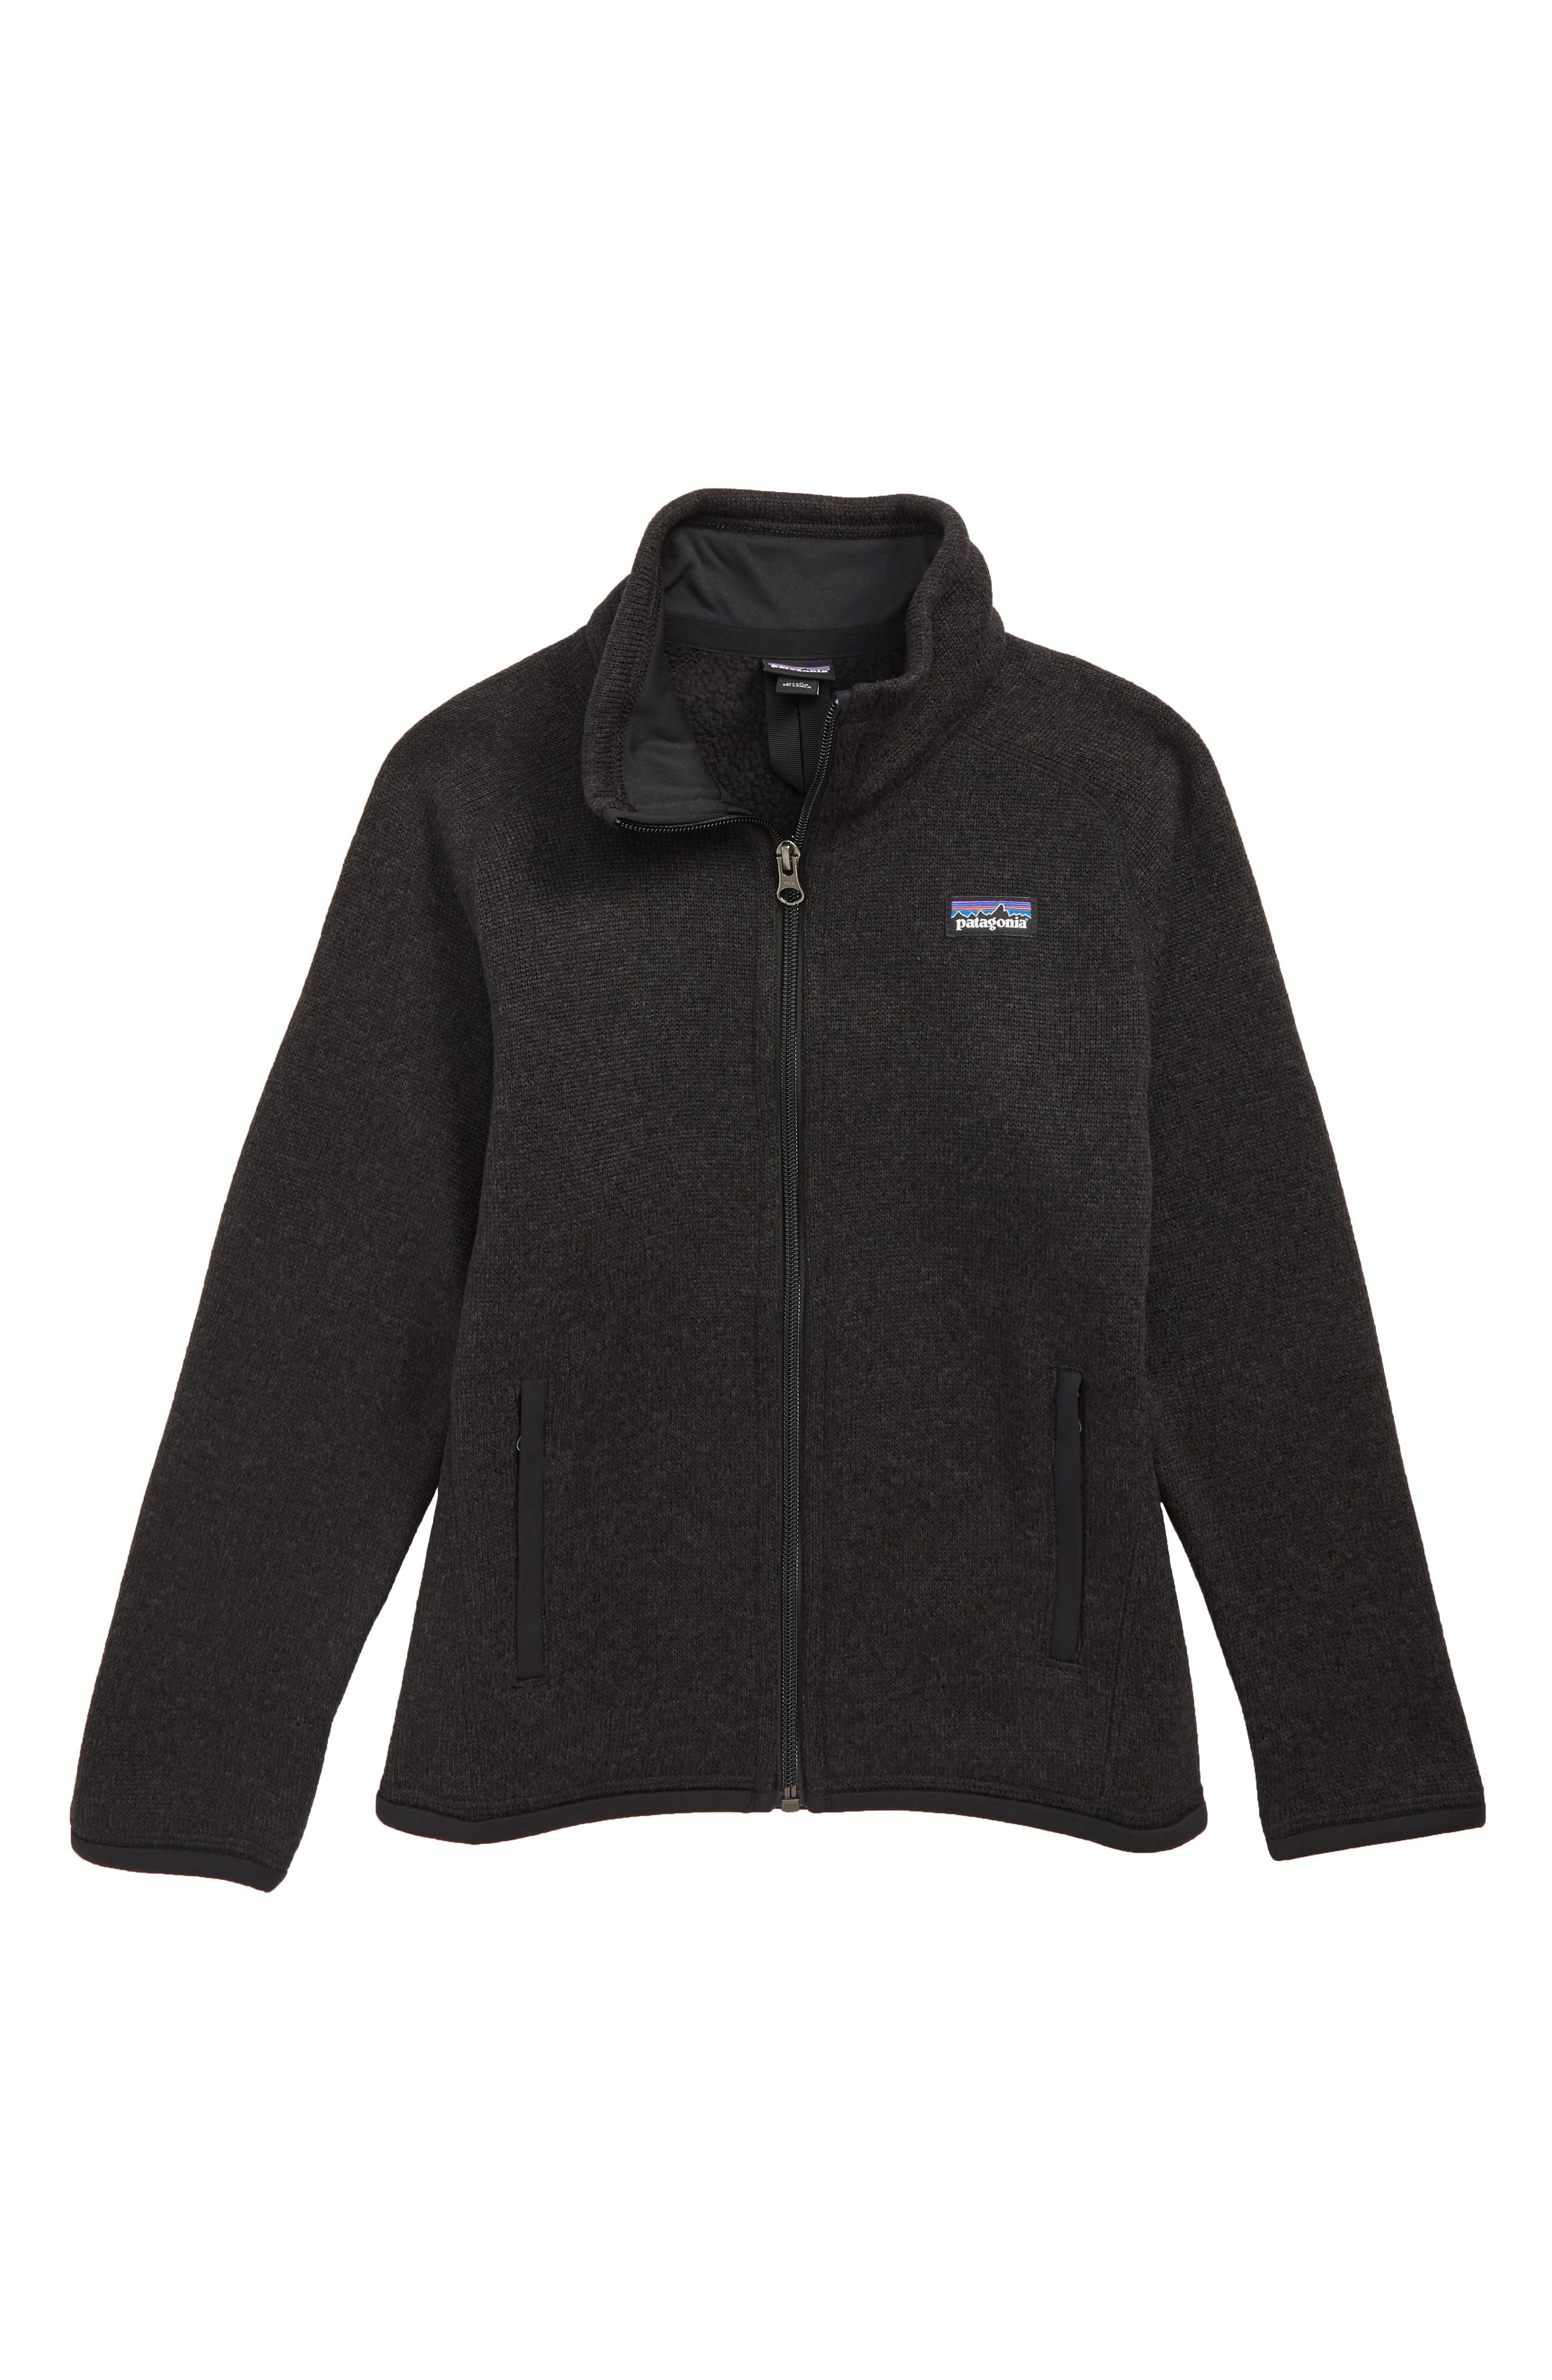 Better Sweater<sup>®</sup> Jacket,                             Main thumbnail 1, color,                             BLACK